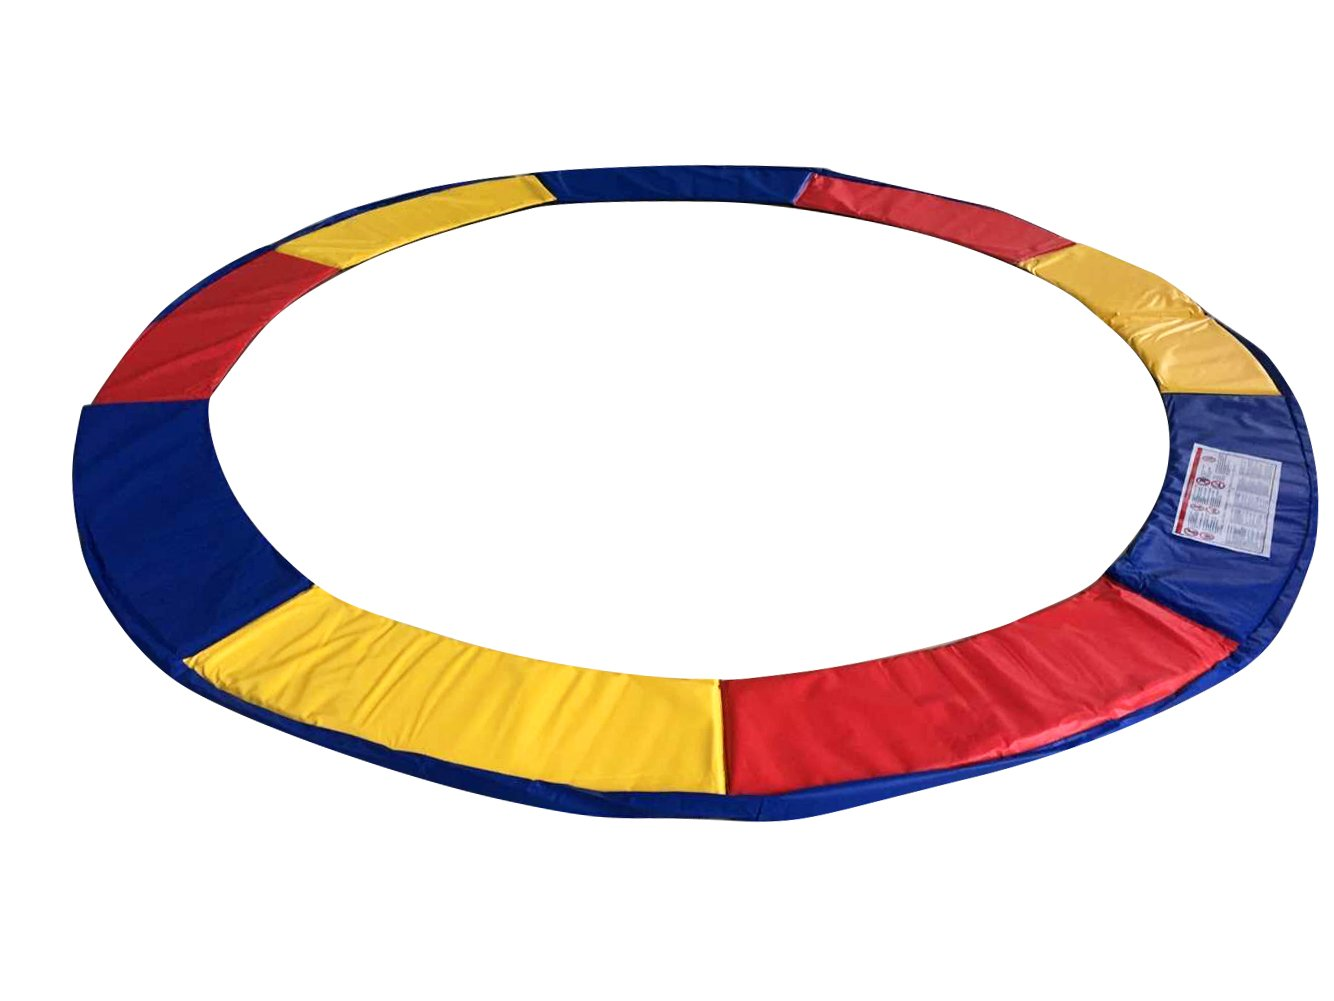 Exacme 15 Feet Trampoline Replacement Safety Spring Cover Round Frame Pad Without Holes, Multicolored by Exacme